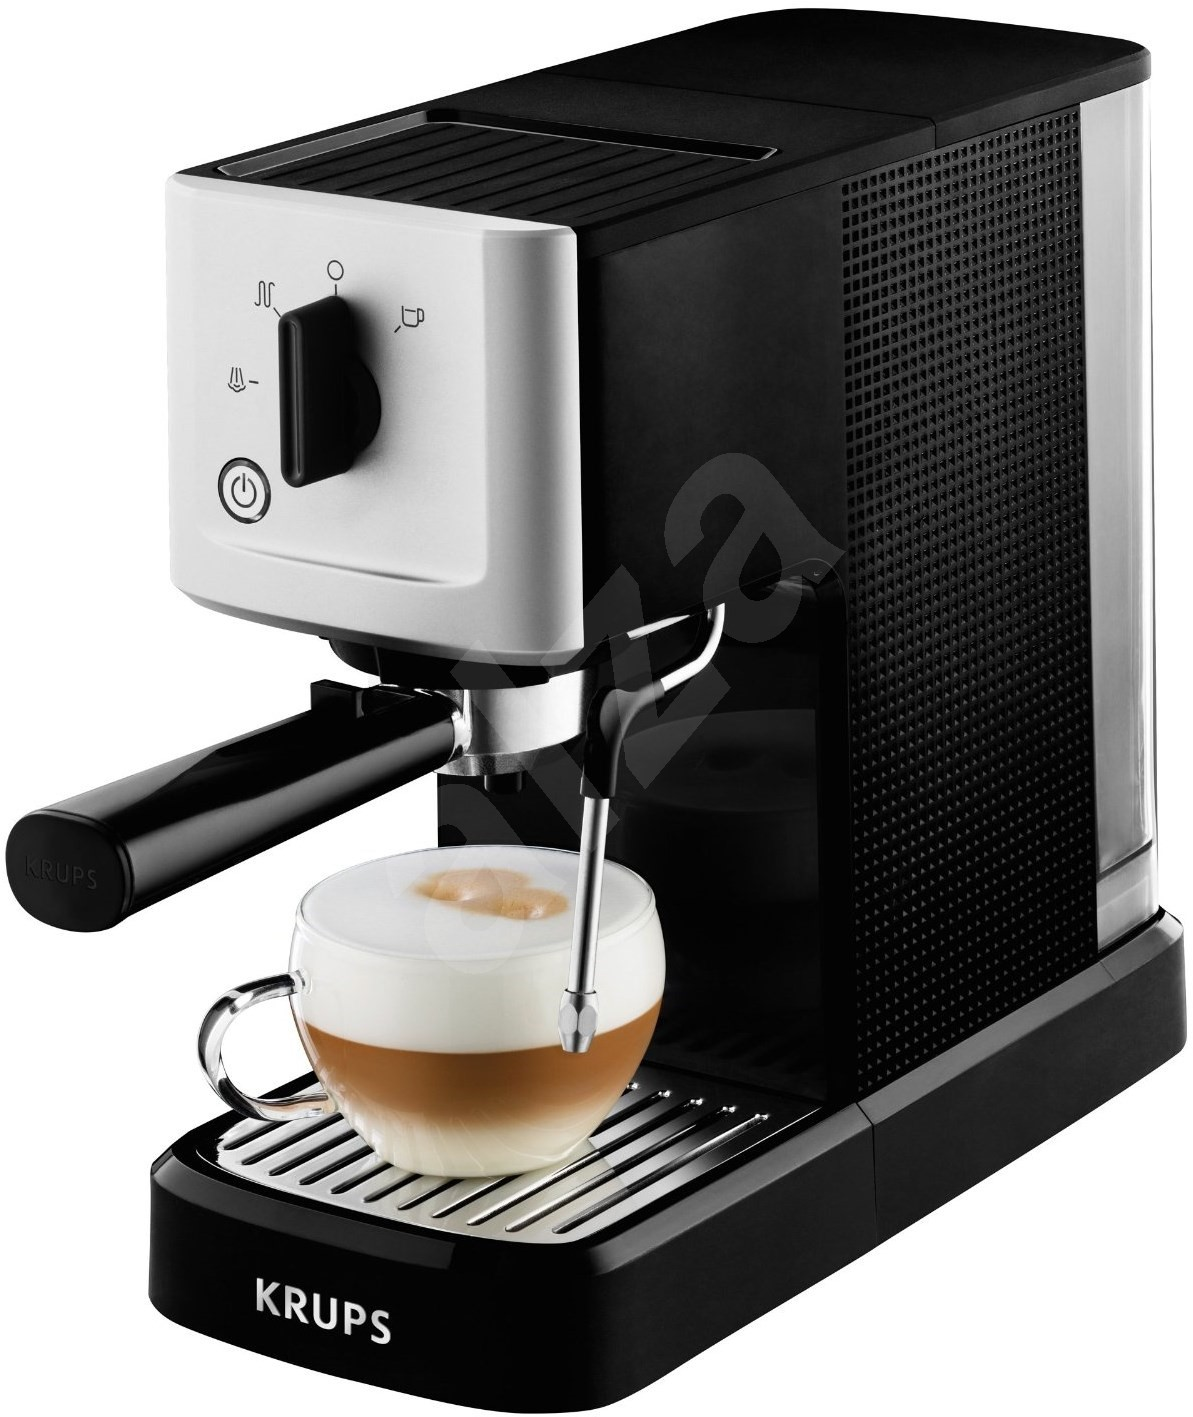 Krups Espresso Coffee Maker Xp1500 Manual : Krups Calvi manual XP344010 - Lever coffee machine Alzashop.com